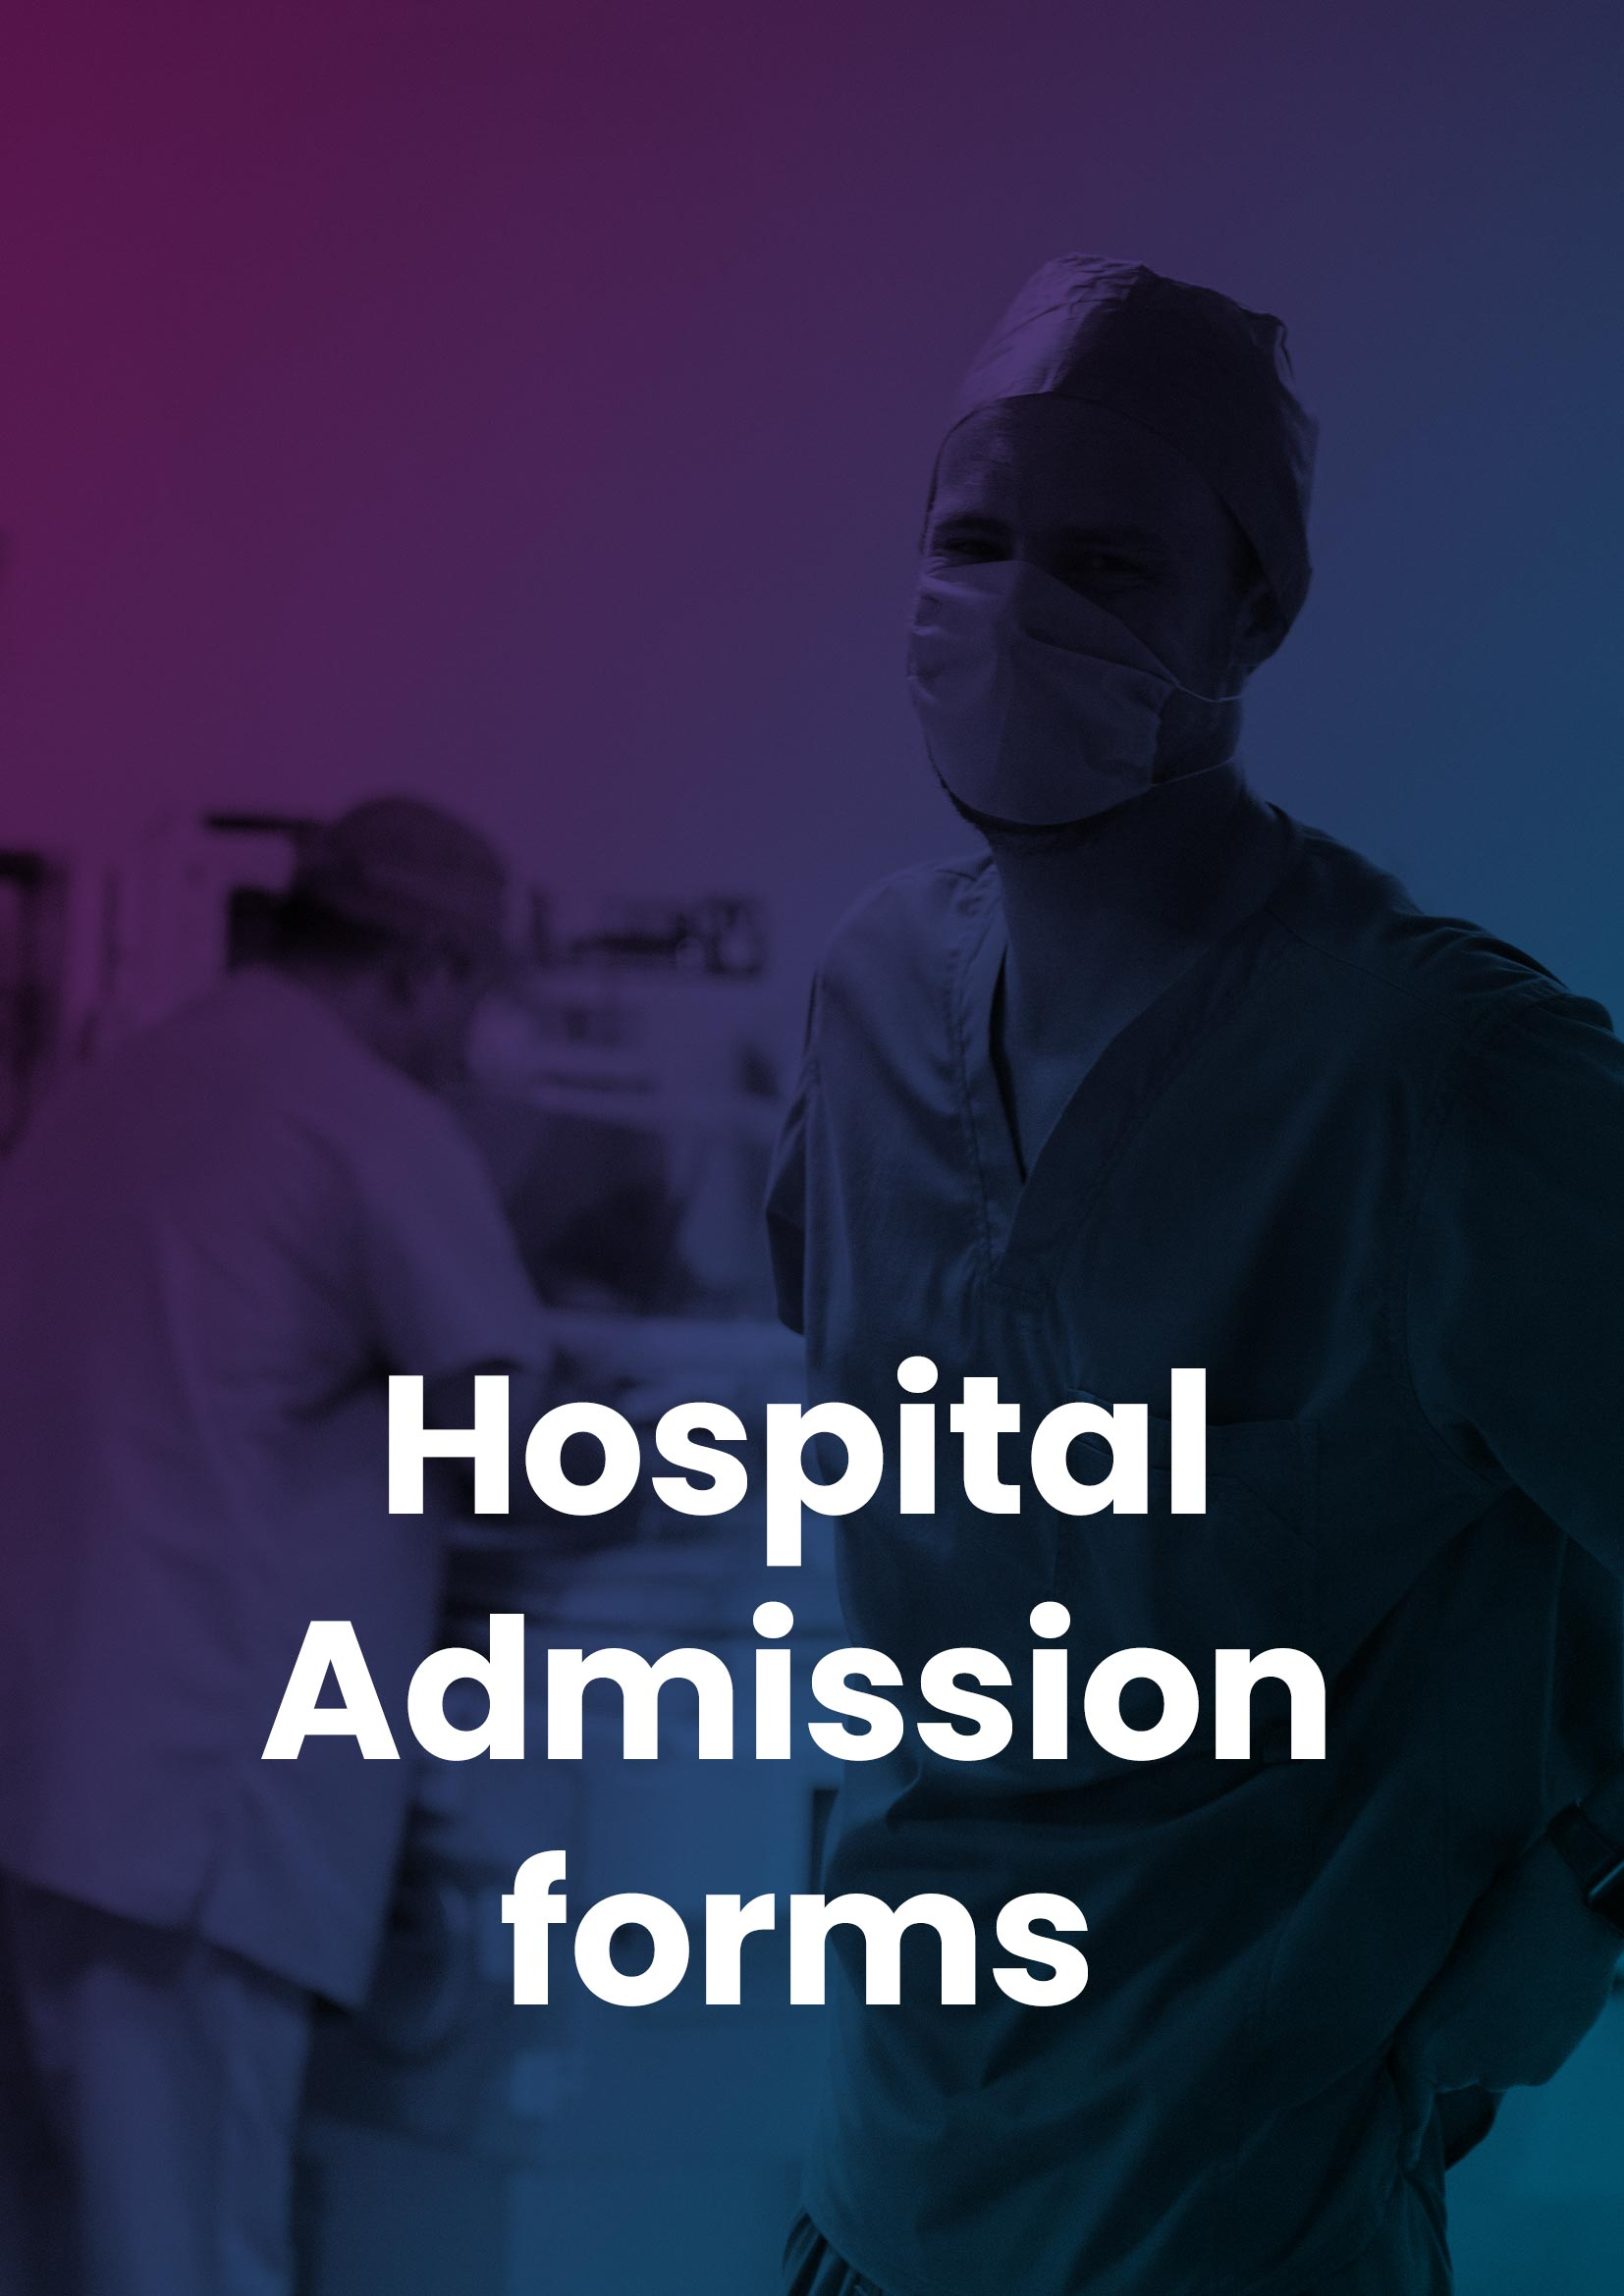 Hospital Admission Forms cover